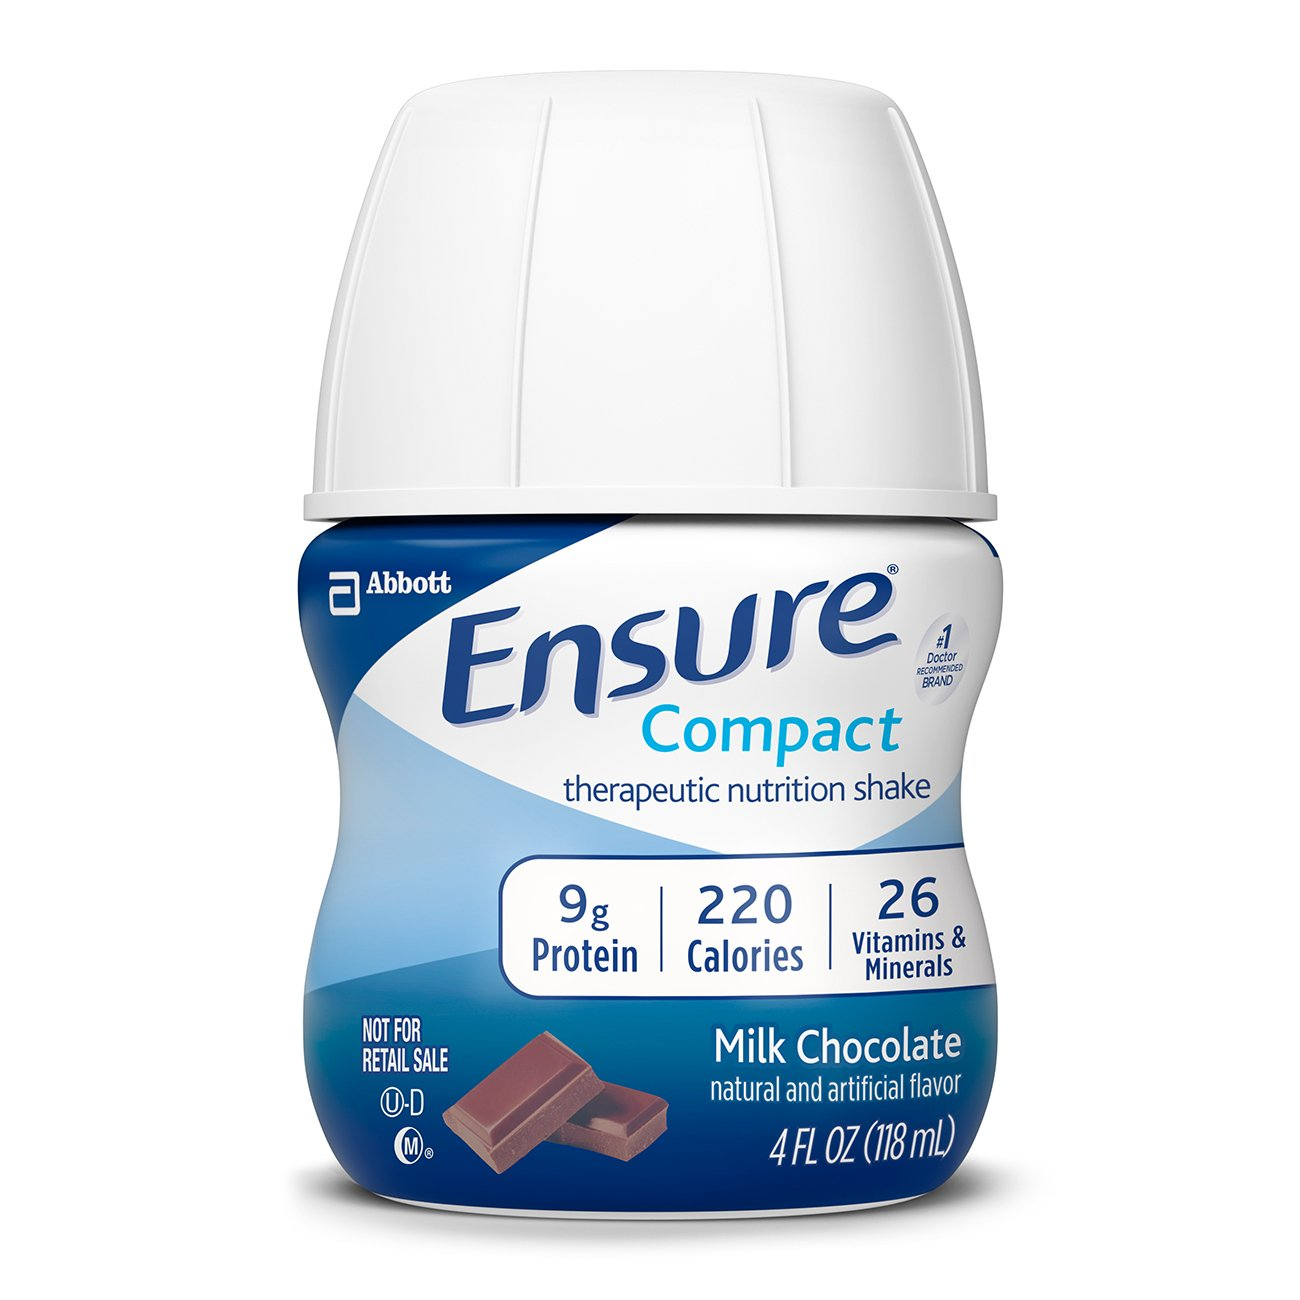 Ensure Compact Nutrition Shake, 9g of protein, Milk Chocolate, 4 fl oz, 24 Count by Ensure